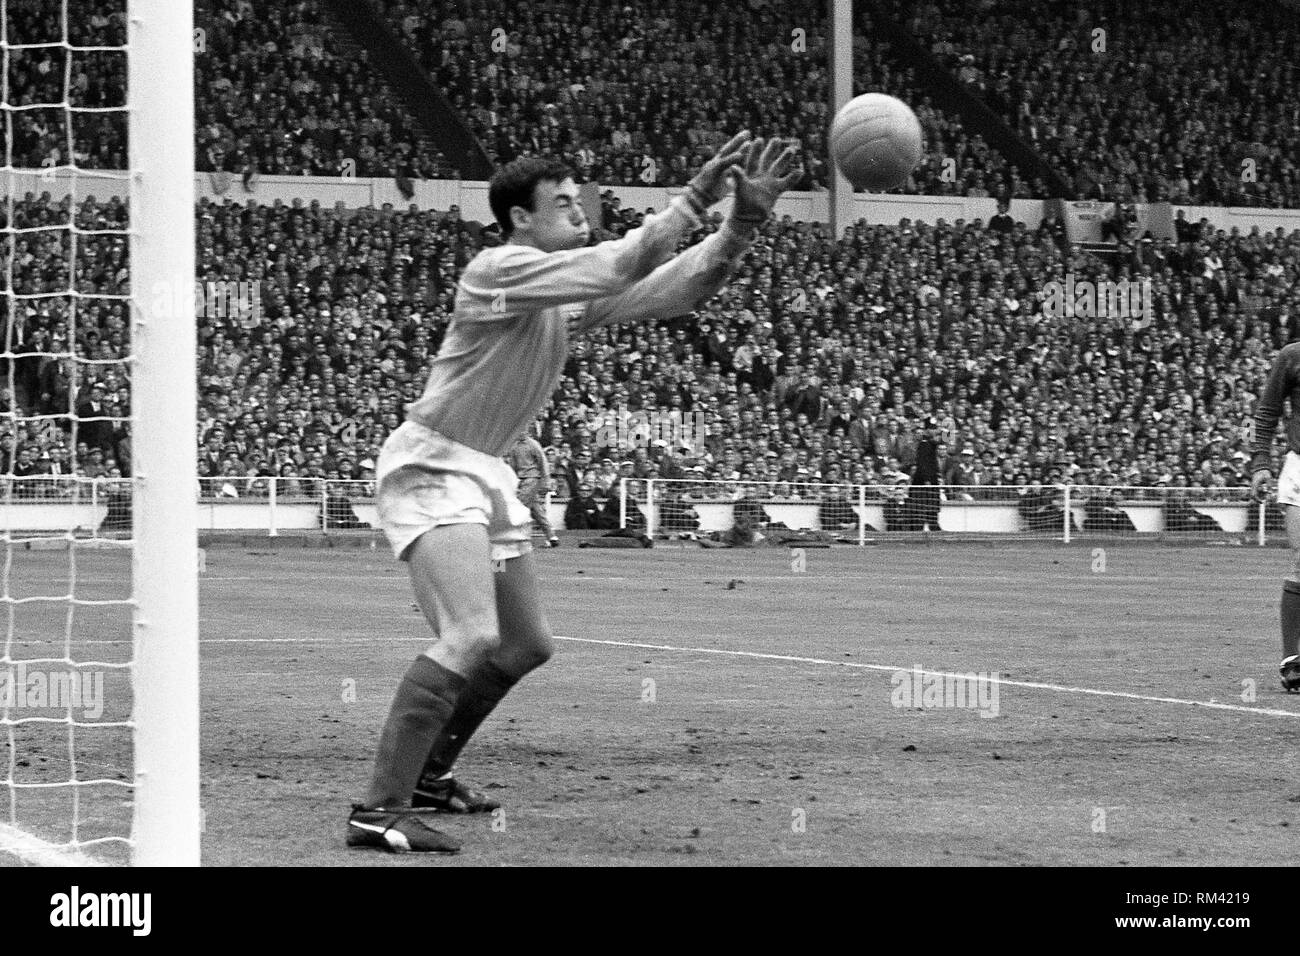 Gordon BANKS, goalkeeper England, action, parade, World Cup 1966 in the London Wembley Stadium, England - Germany 4: 2 n/a, 30.07.1966. | Usage worldwide - Stock Image